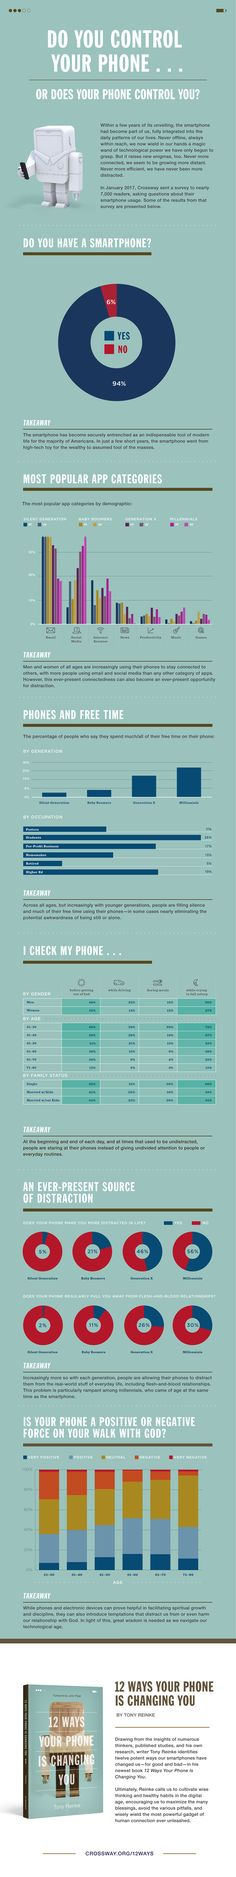 Infographic: How Is Your Phone Changing You?